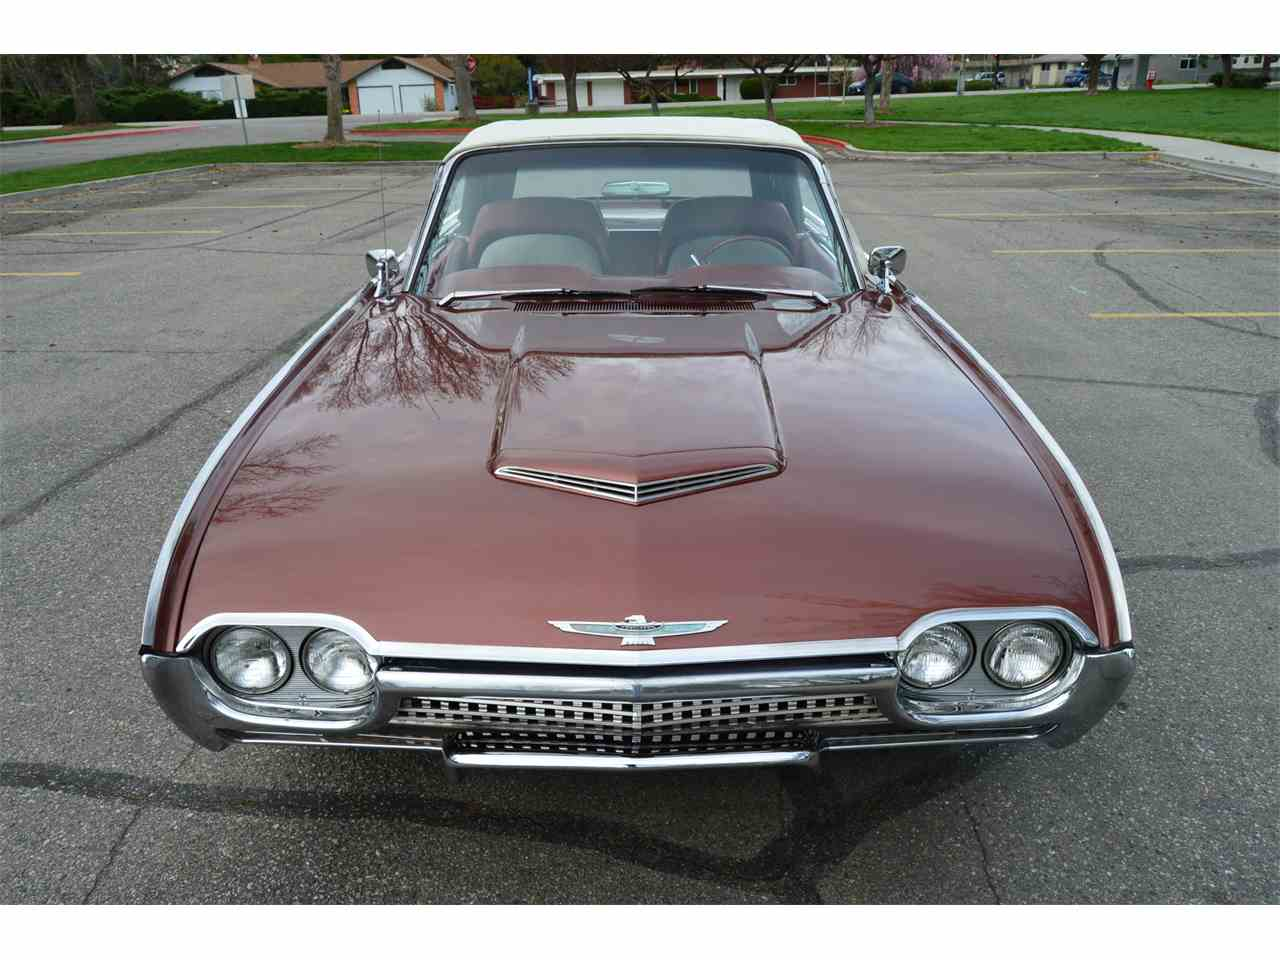 Large Picture of '62 Ford Thunderbird located in Boise Idaho - $28,900.00 - NAHH